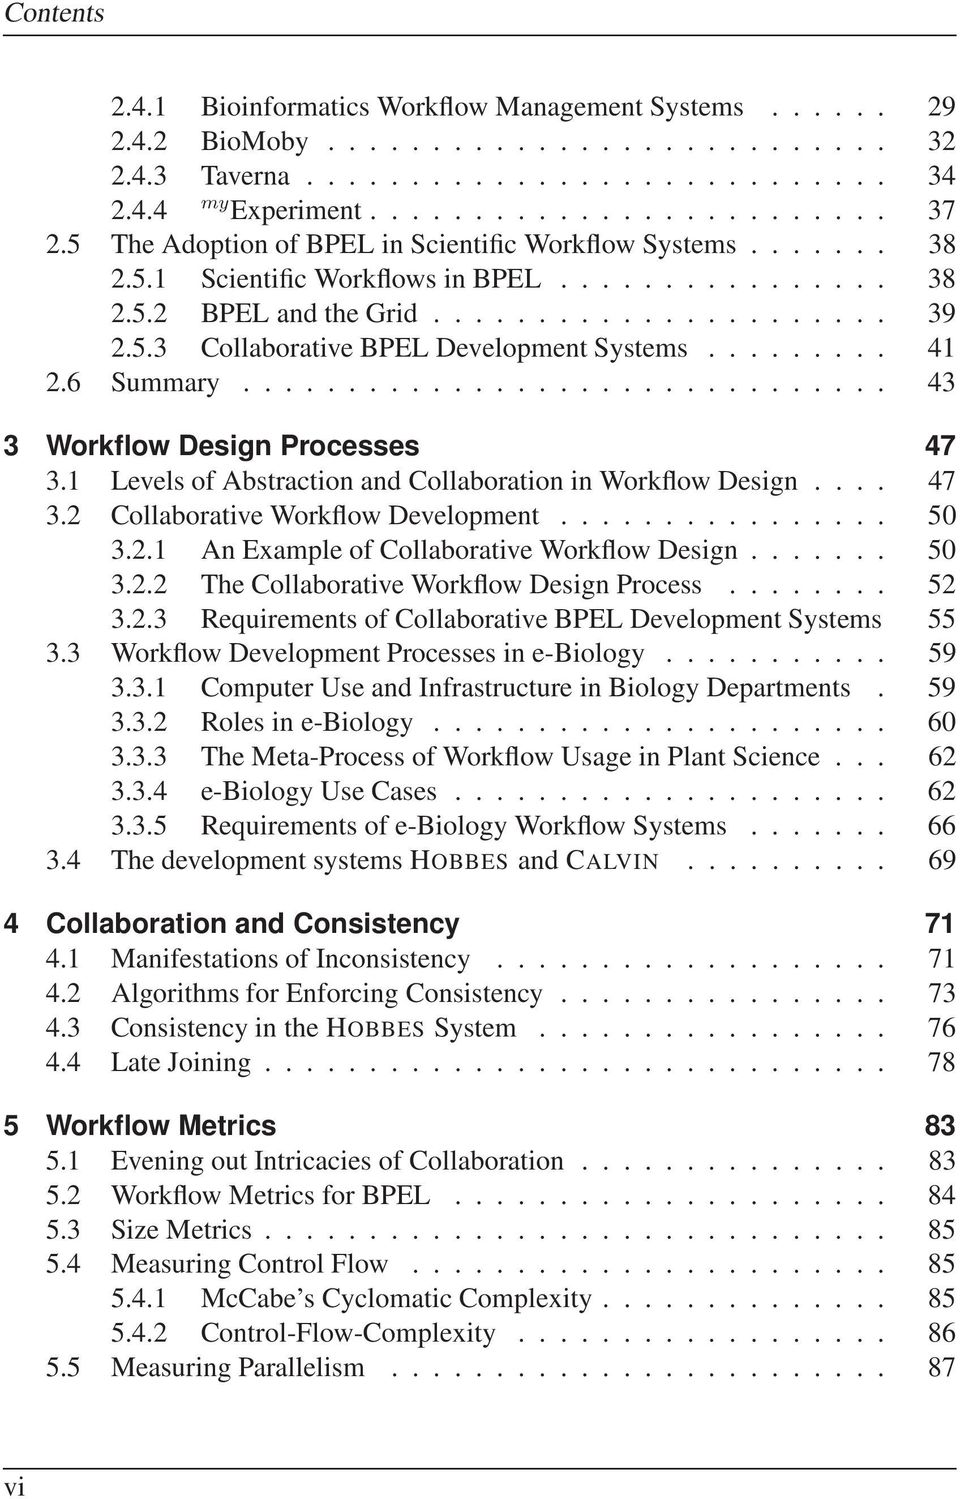 ........ 41 2.6 Summary............................... 43 3 Workflow Design Processes 47 3.1 Levels of Abstraction and Collaboration in Workflow Design.... 47 3.2 Collaborative Workflow Development.